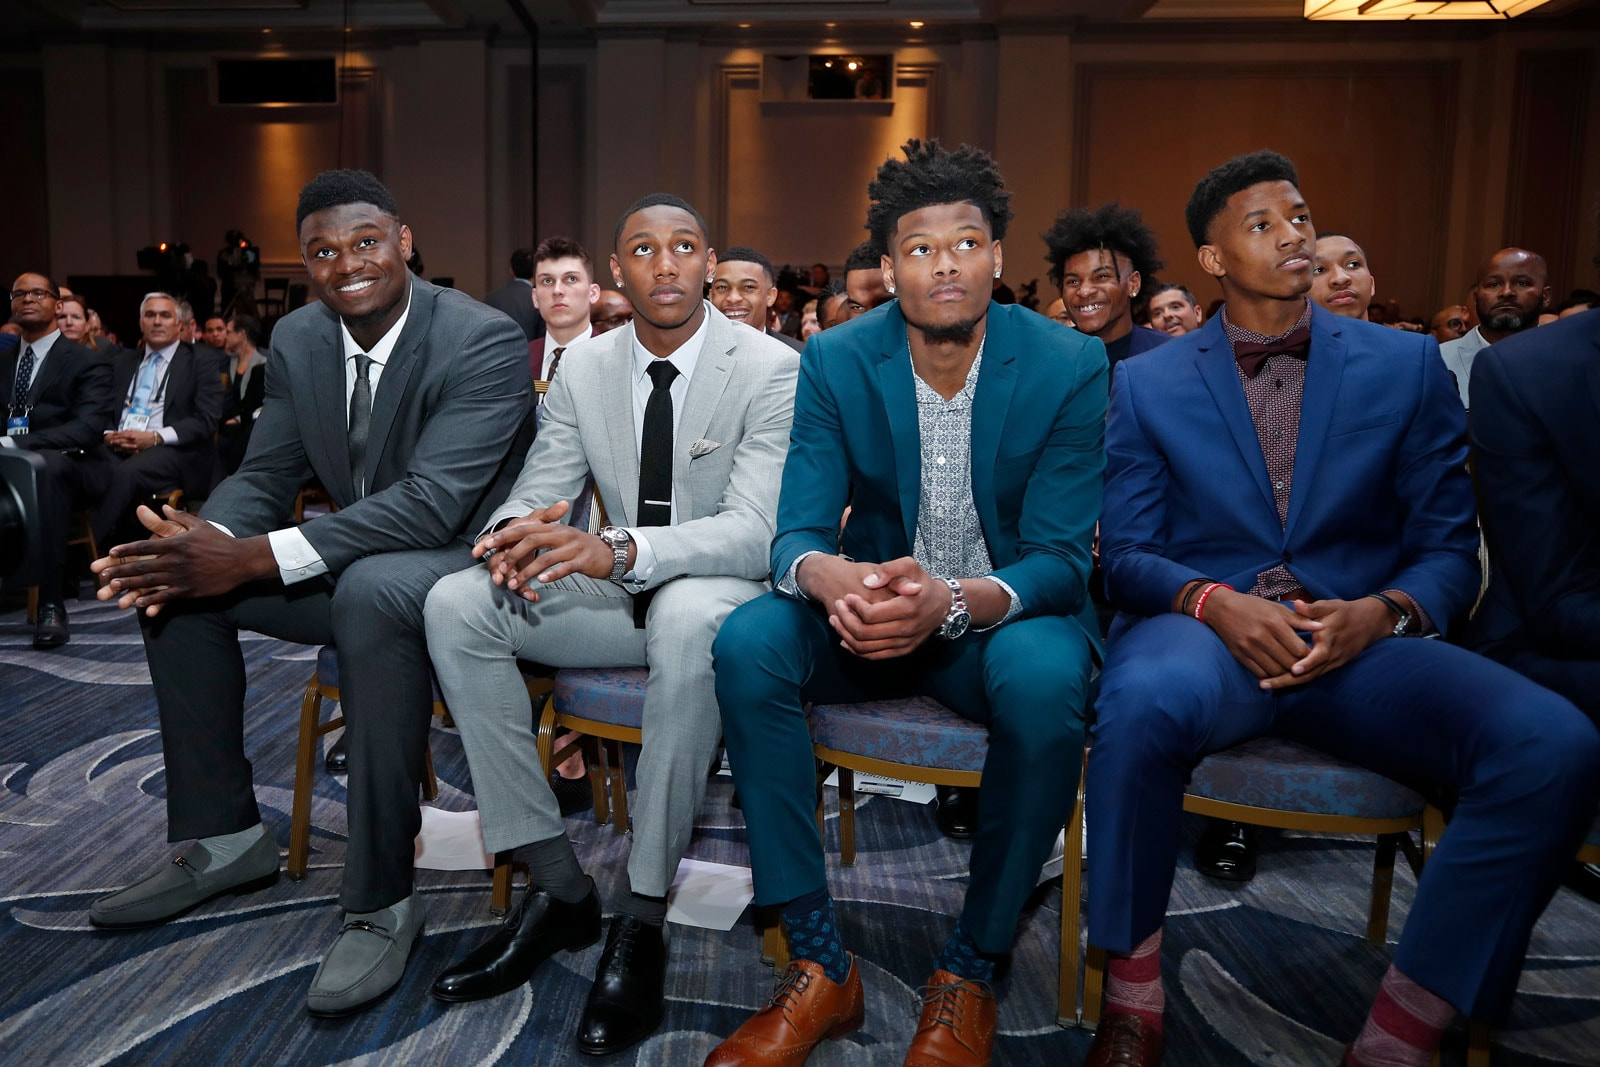 NBA Draft Prospects, Zion Williamson, RJ Barrett, Cam Reddish and Jarrett Culver attend the 2019 NBA Draft Lottery on May 14, 2019 at the Chicago Hilton in Chicago, Illinois.